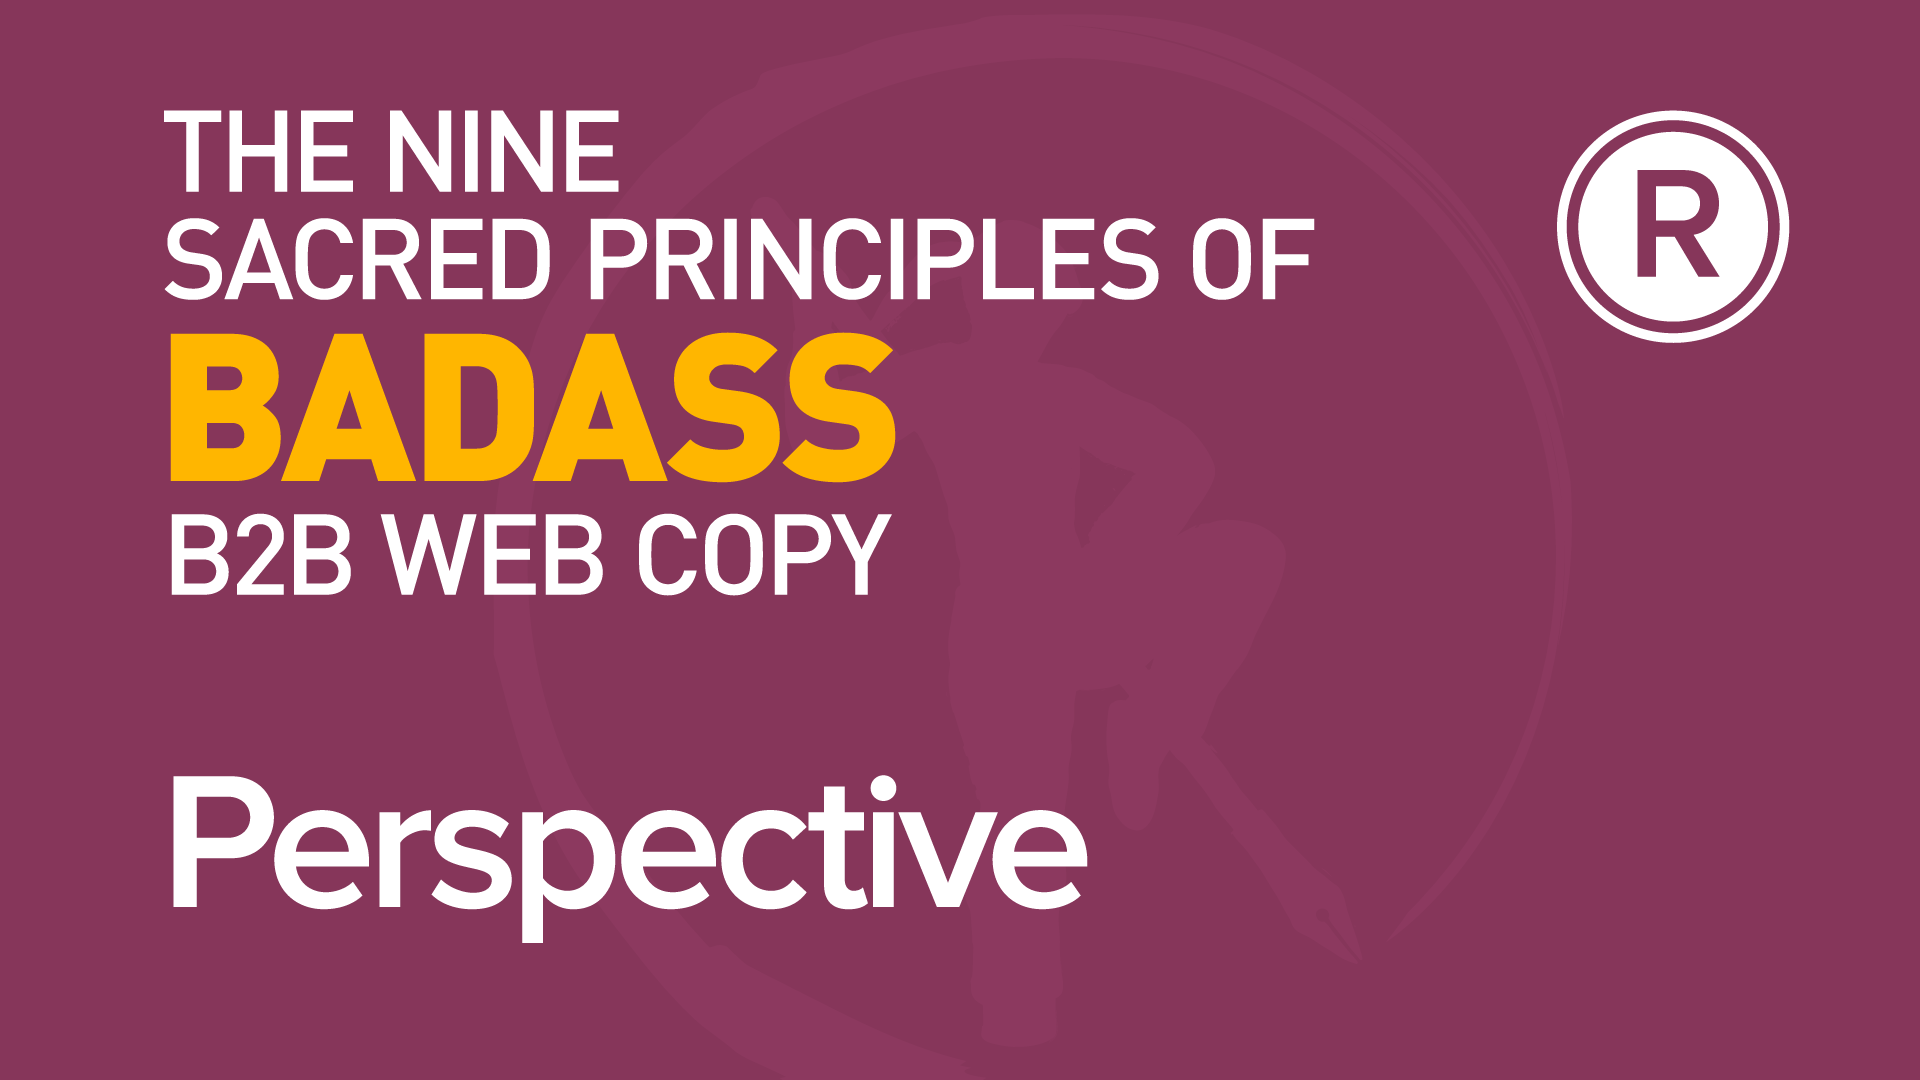 3rd principle of badass B2B web copy: Perspective